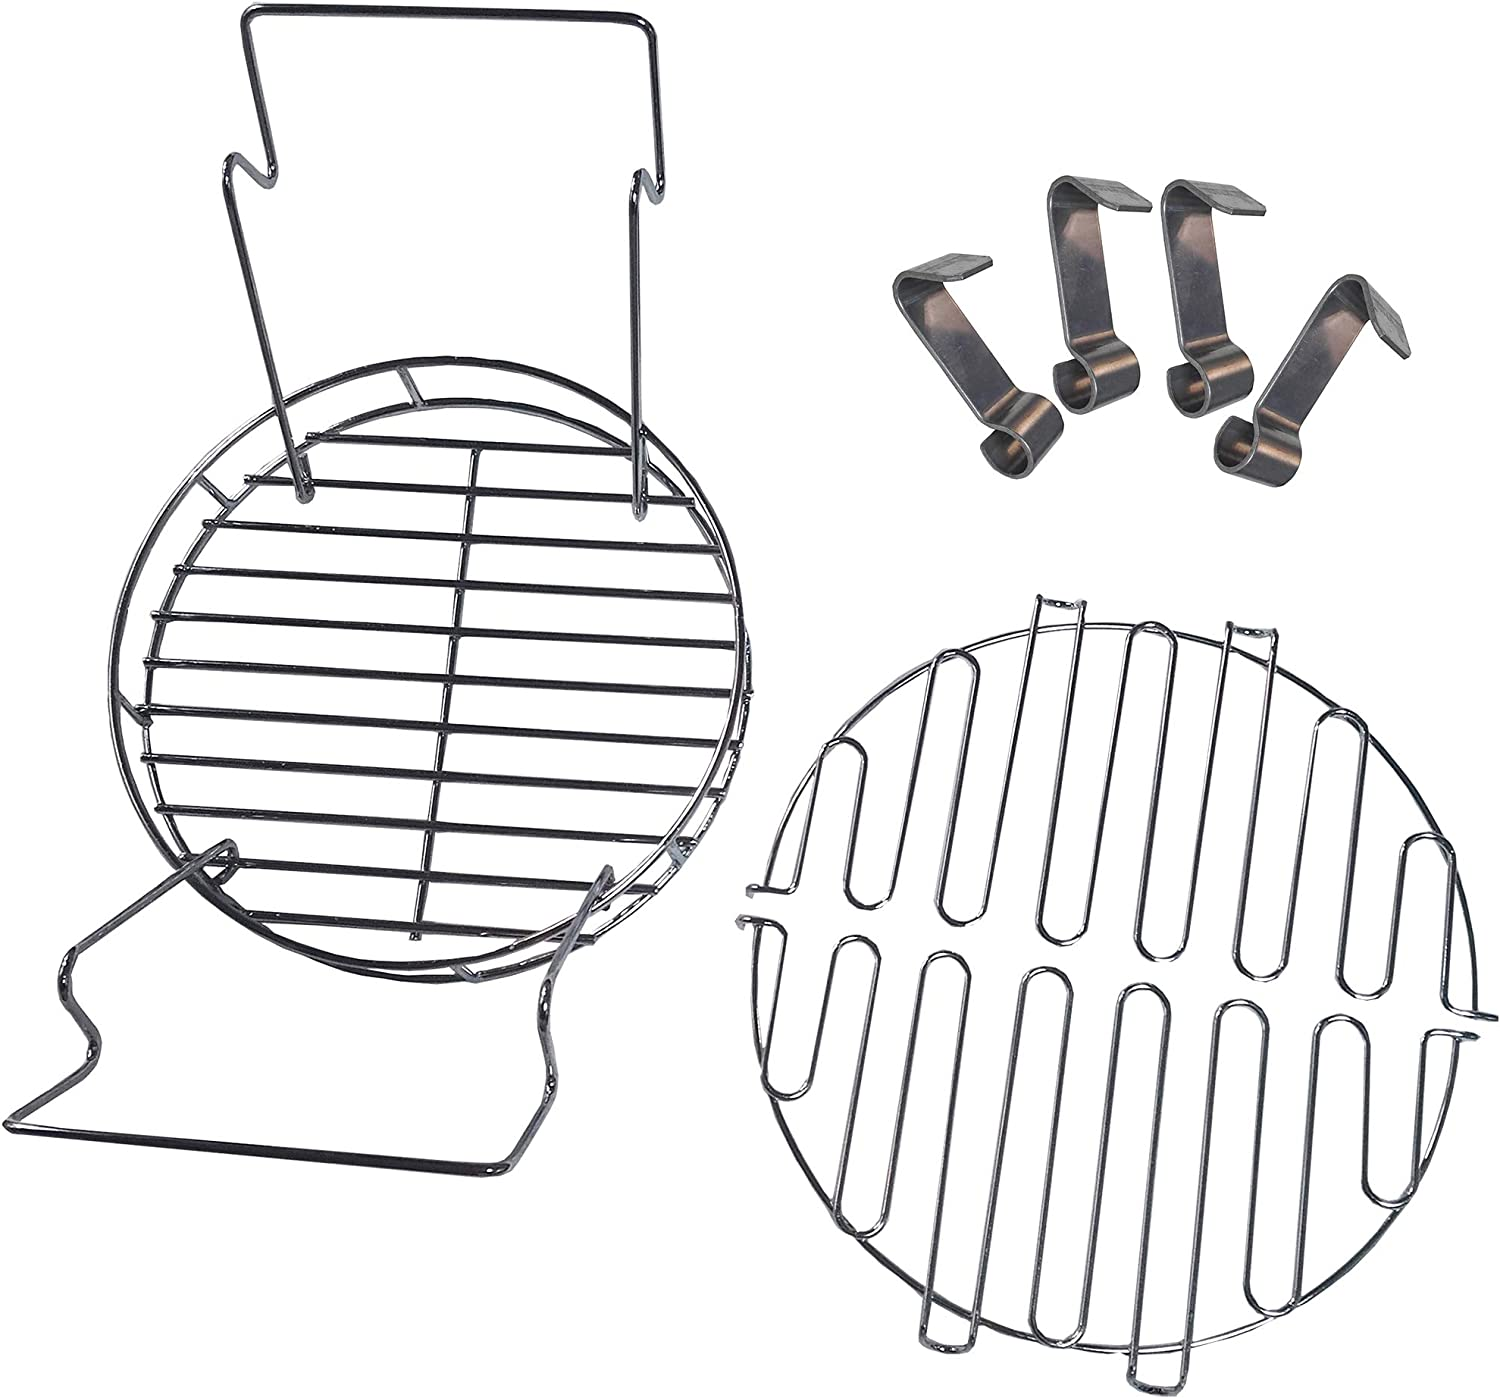 Leg Rack,Rib Hooks soldbbq A Must Have Accessory Kit for Owner of The Char-Broil of The Big Easy,Includes Bunk Bed Basket